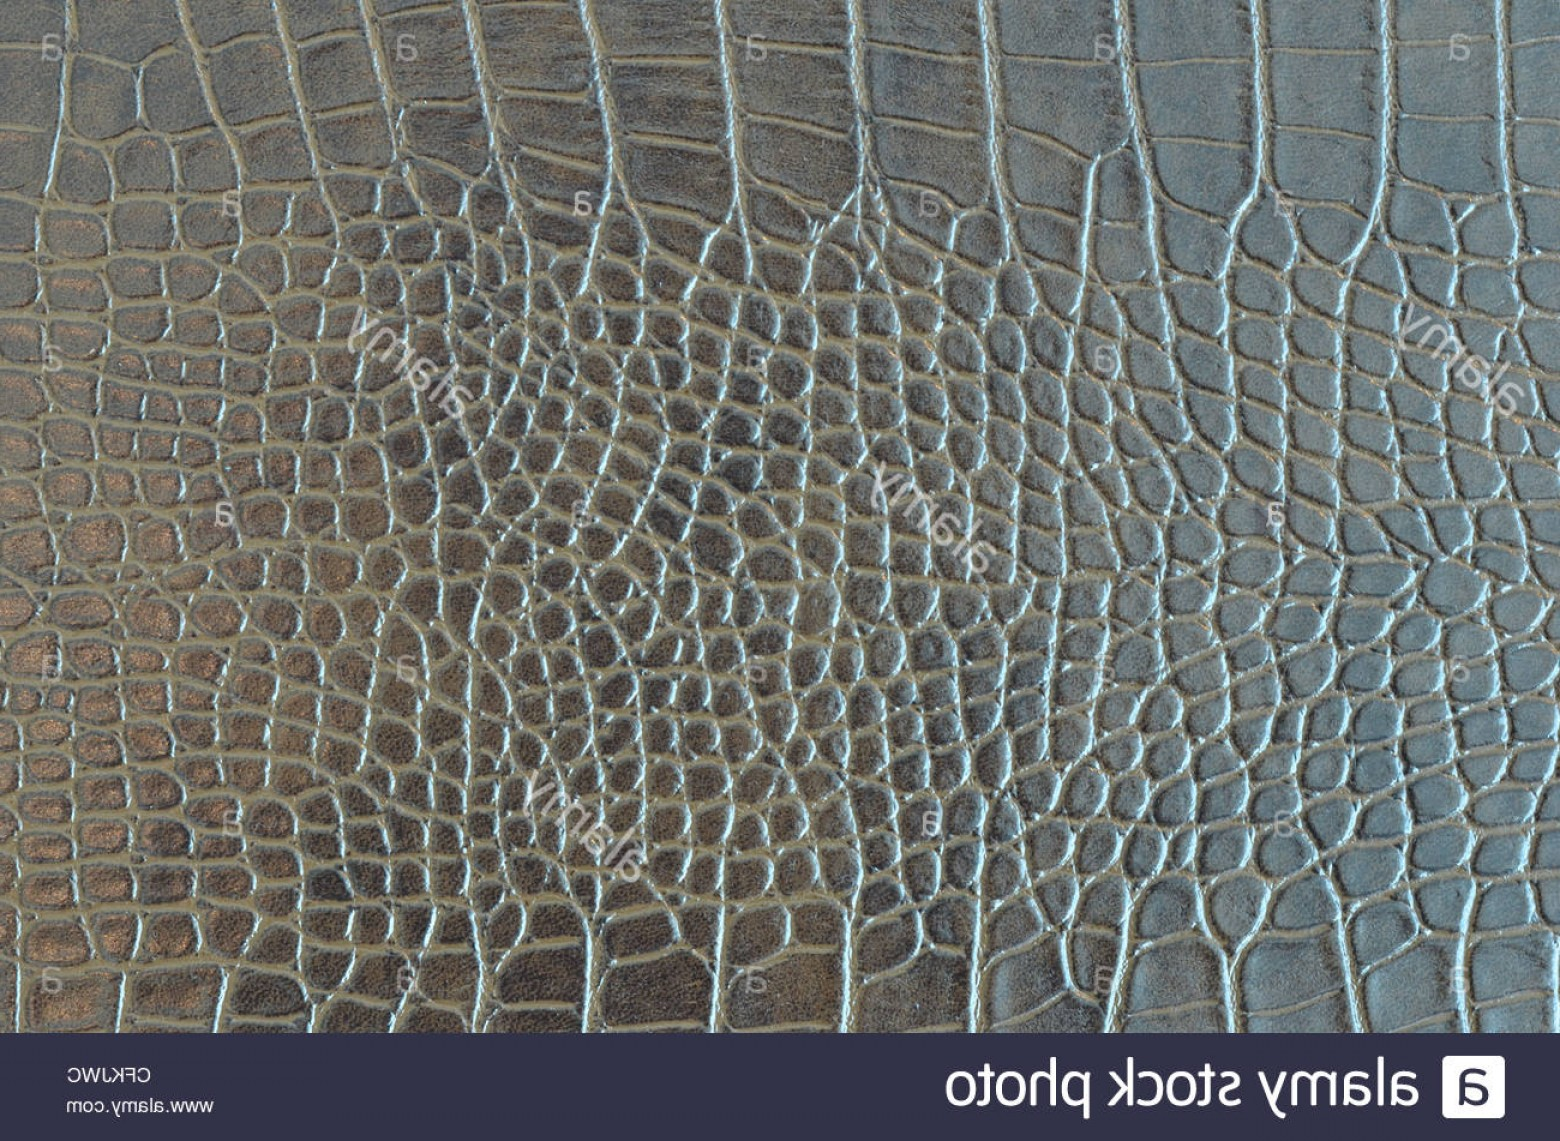 Alligator Skin Texture Vector: Stock Photo Crocodile Skin Pattern Alligator Skin Seamless Texture